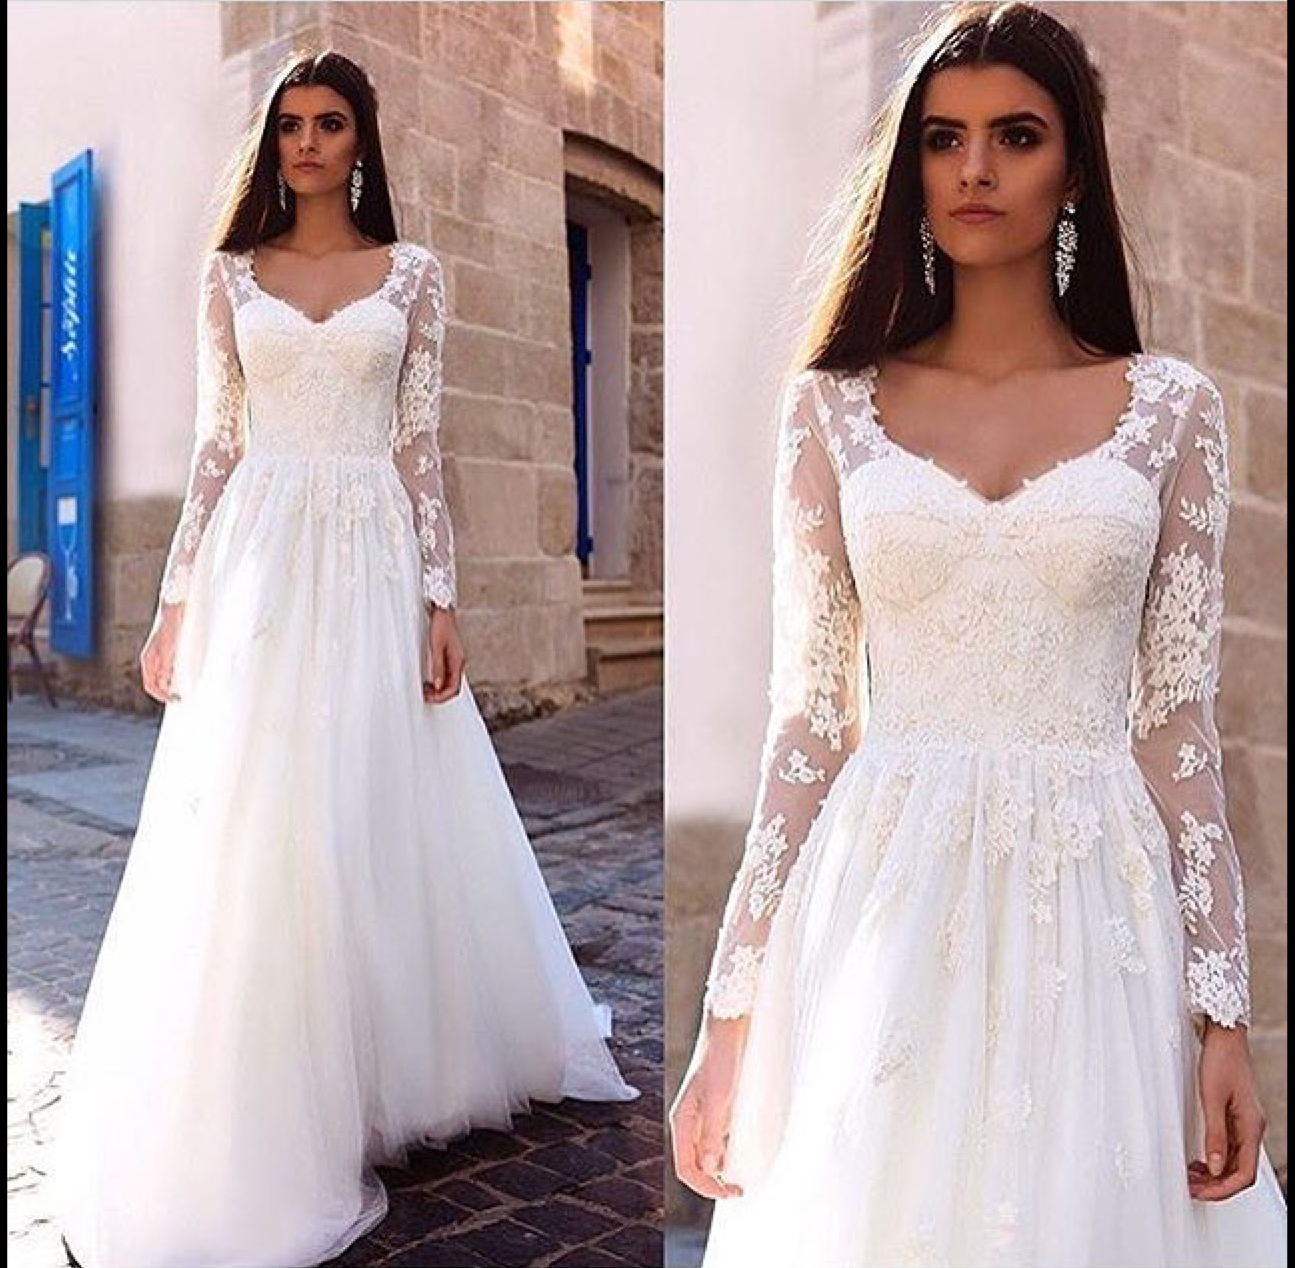 Pics Of Vintage Wedding Dresses: Long Sleeve Lace Wedding Dress Lace Ball Gown Vintage